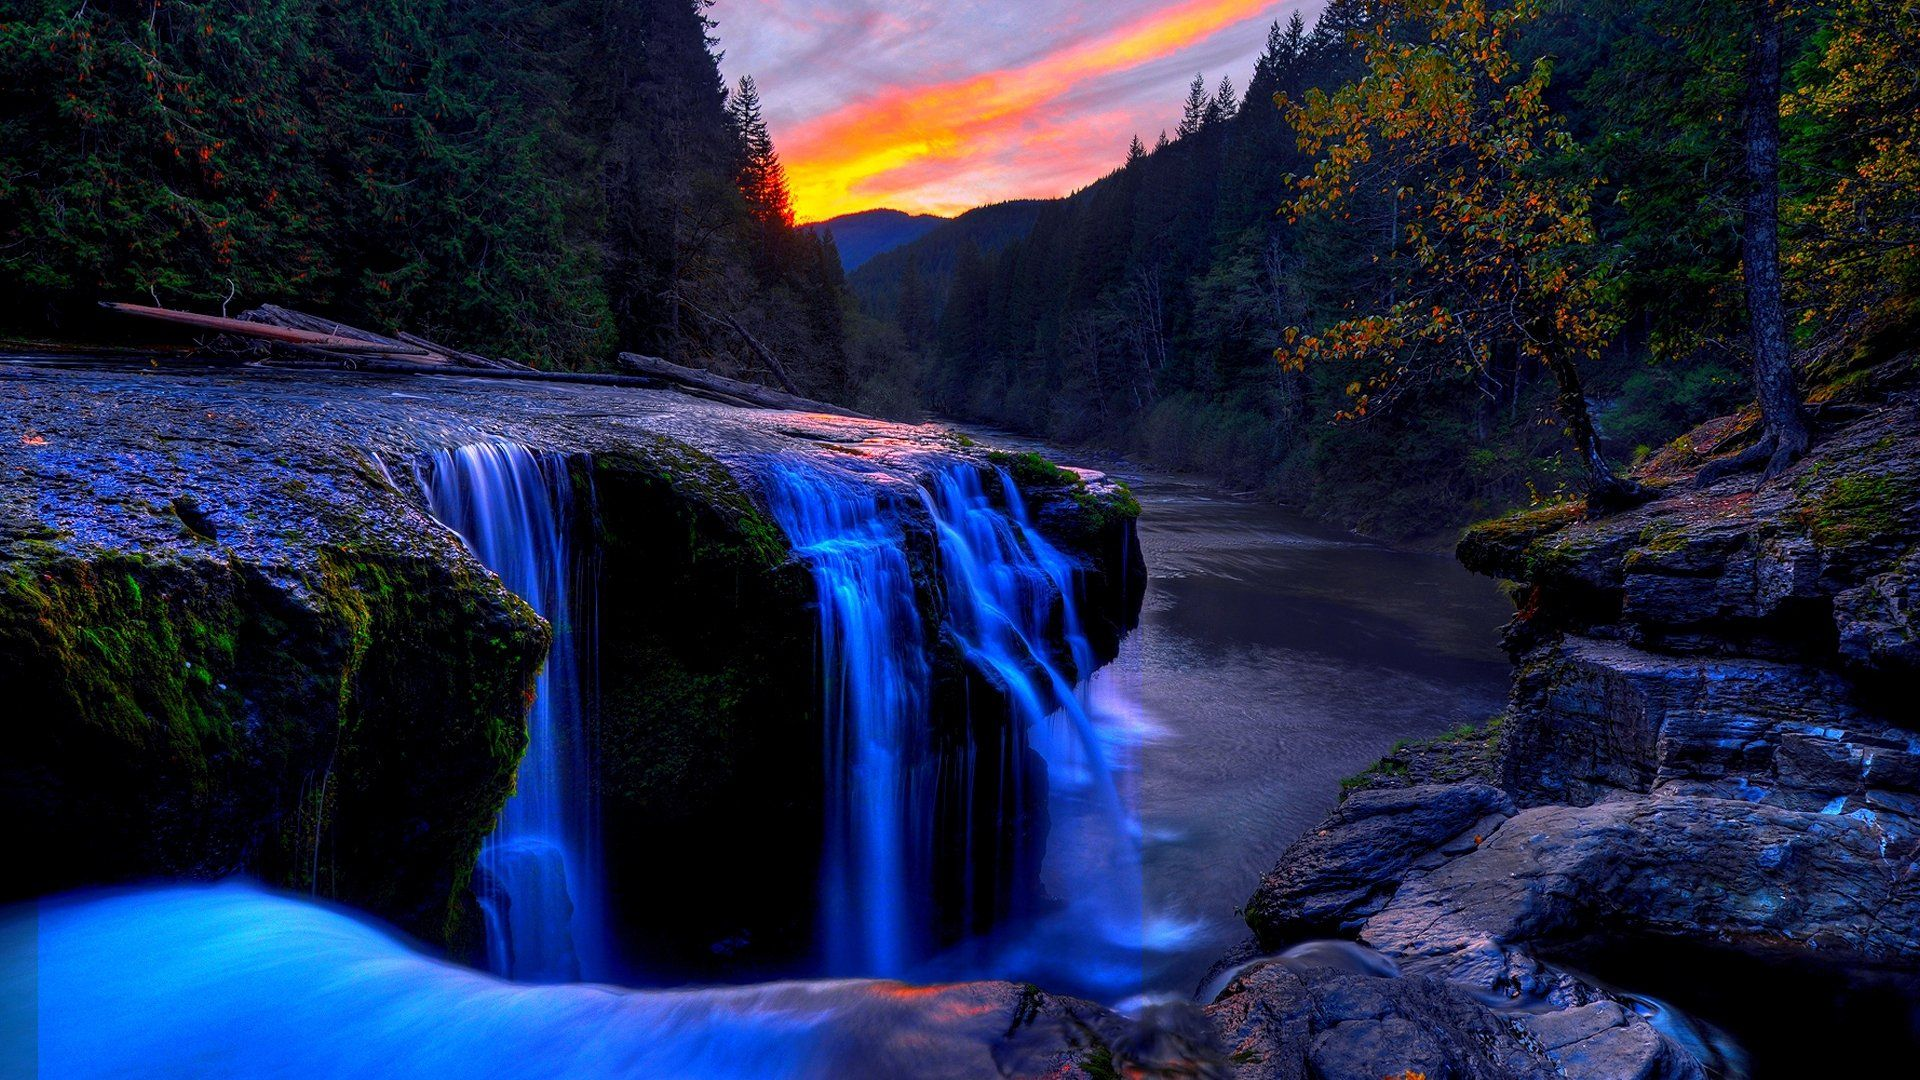 Not Found Waterfall Wallpaper Waterfall Computer Wallpaper Hd